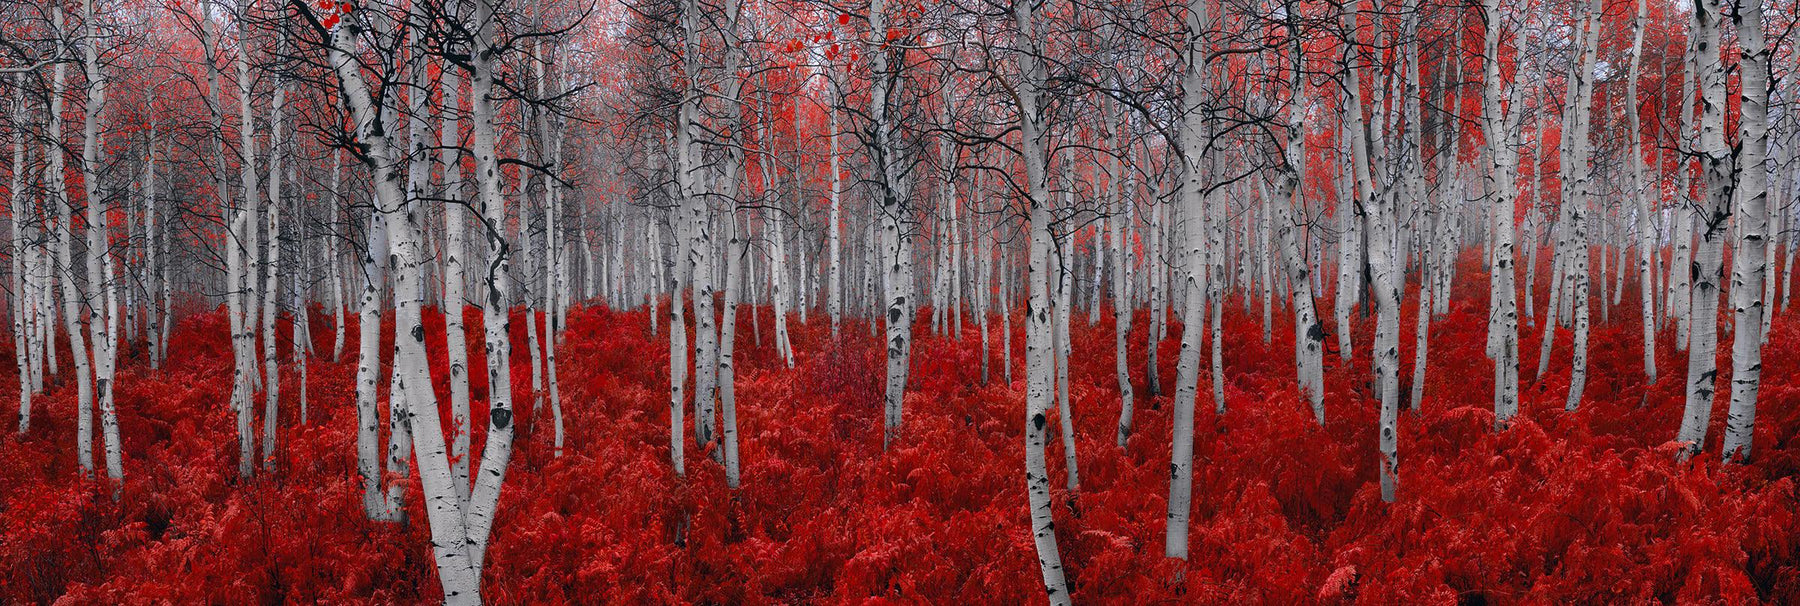 White forest of birch trees with red leaves surrounded by red plants in Deer Valley Utah